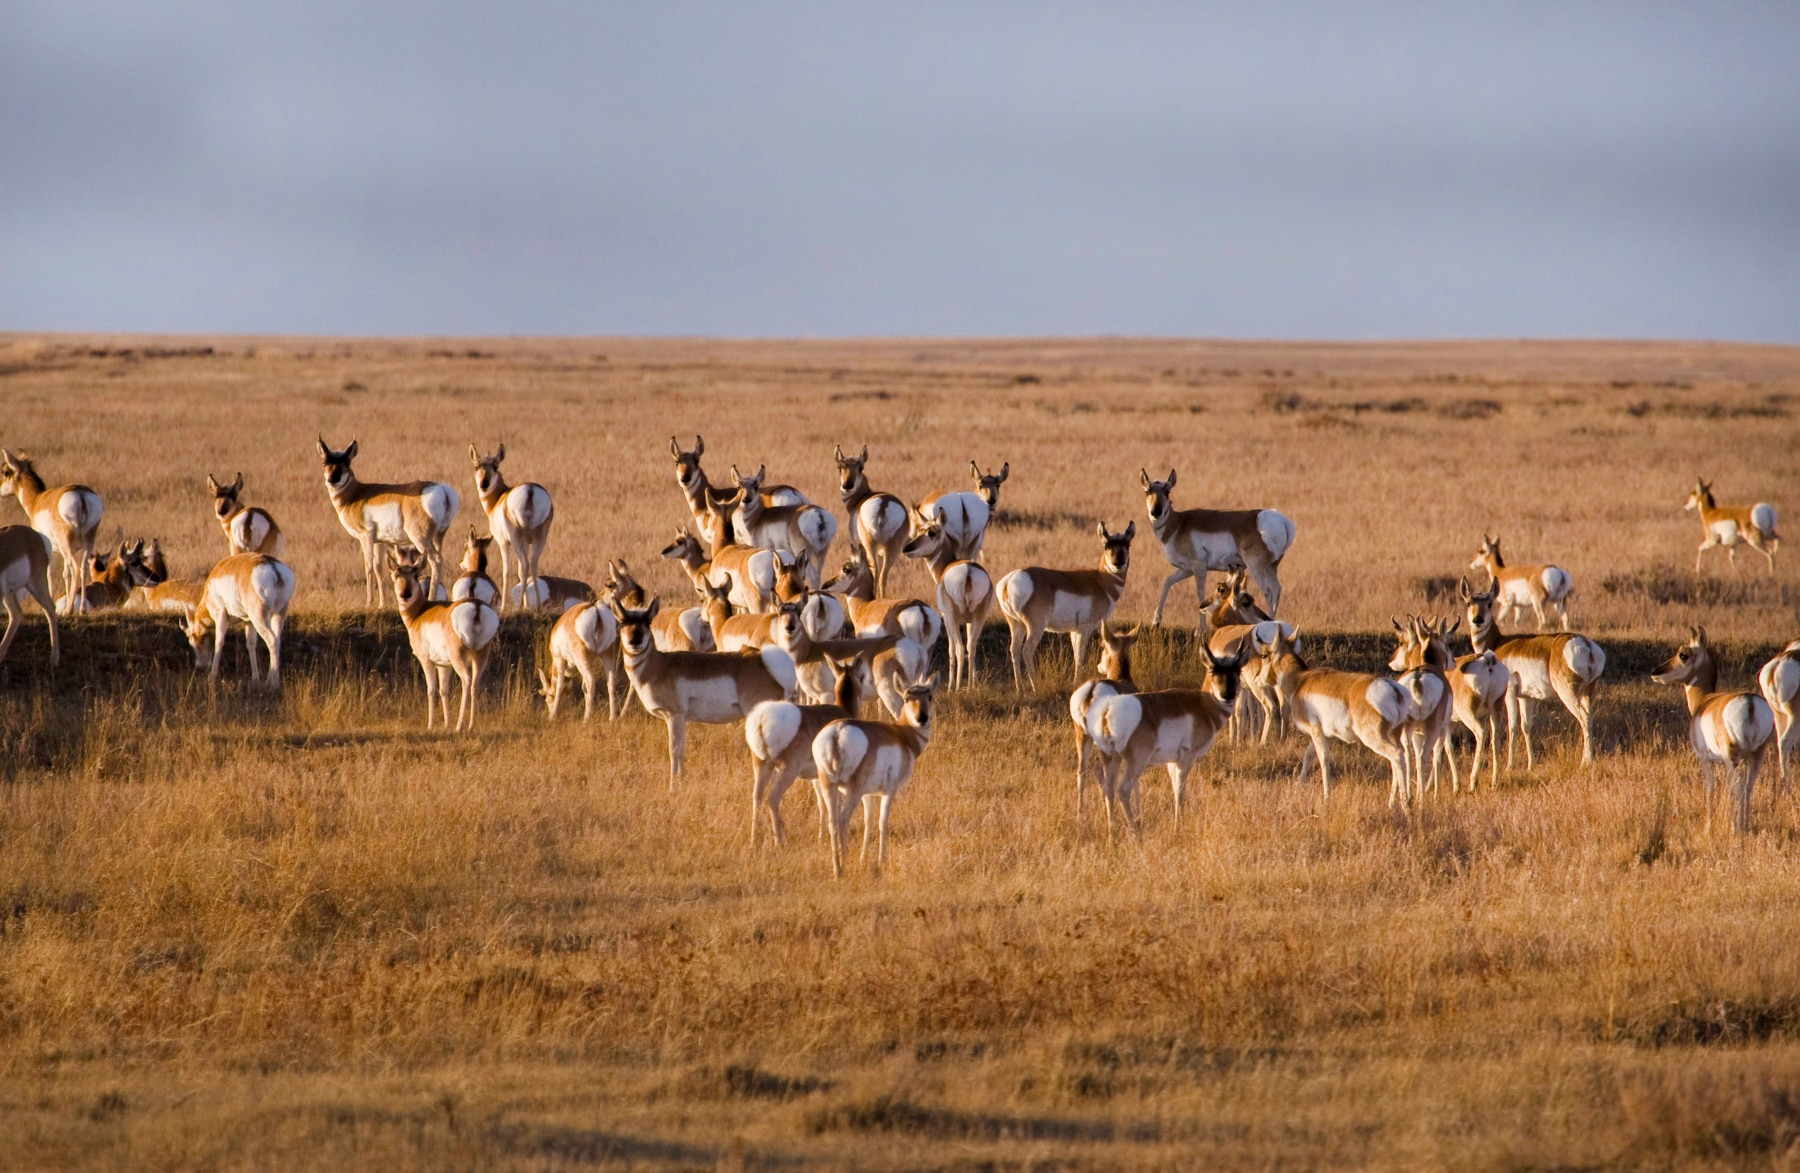 Pronghorn herd in grassland (Dennis Lingohr/APR)